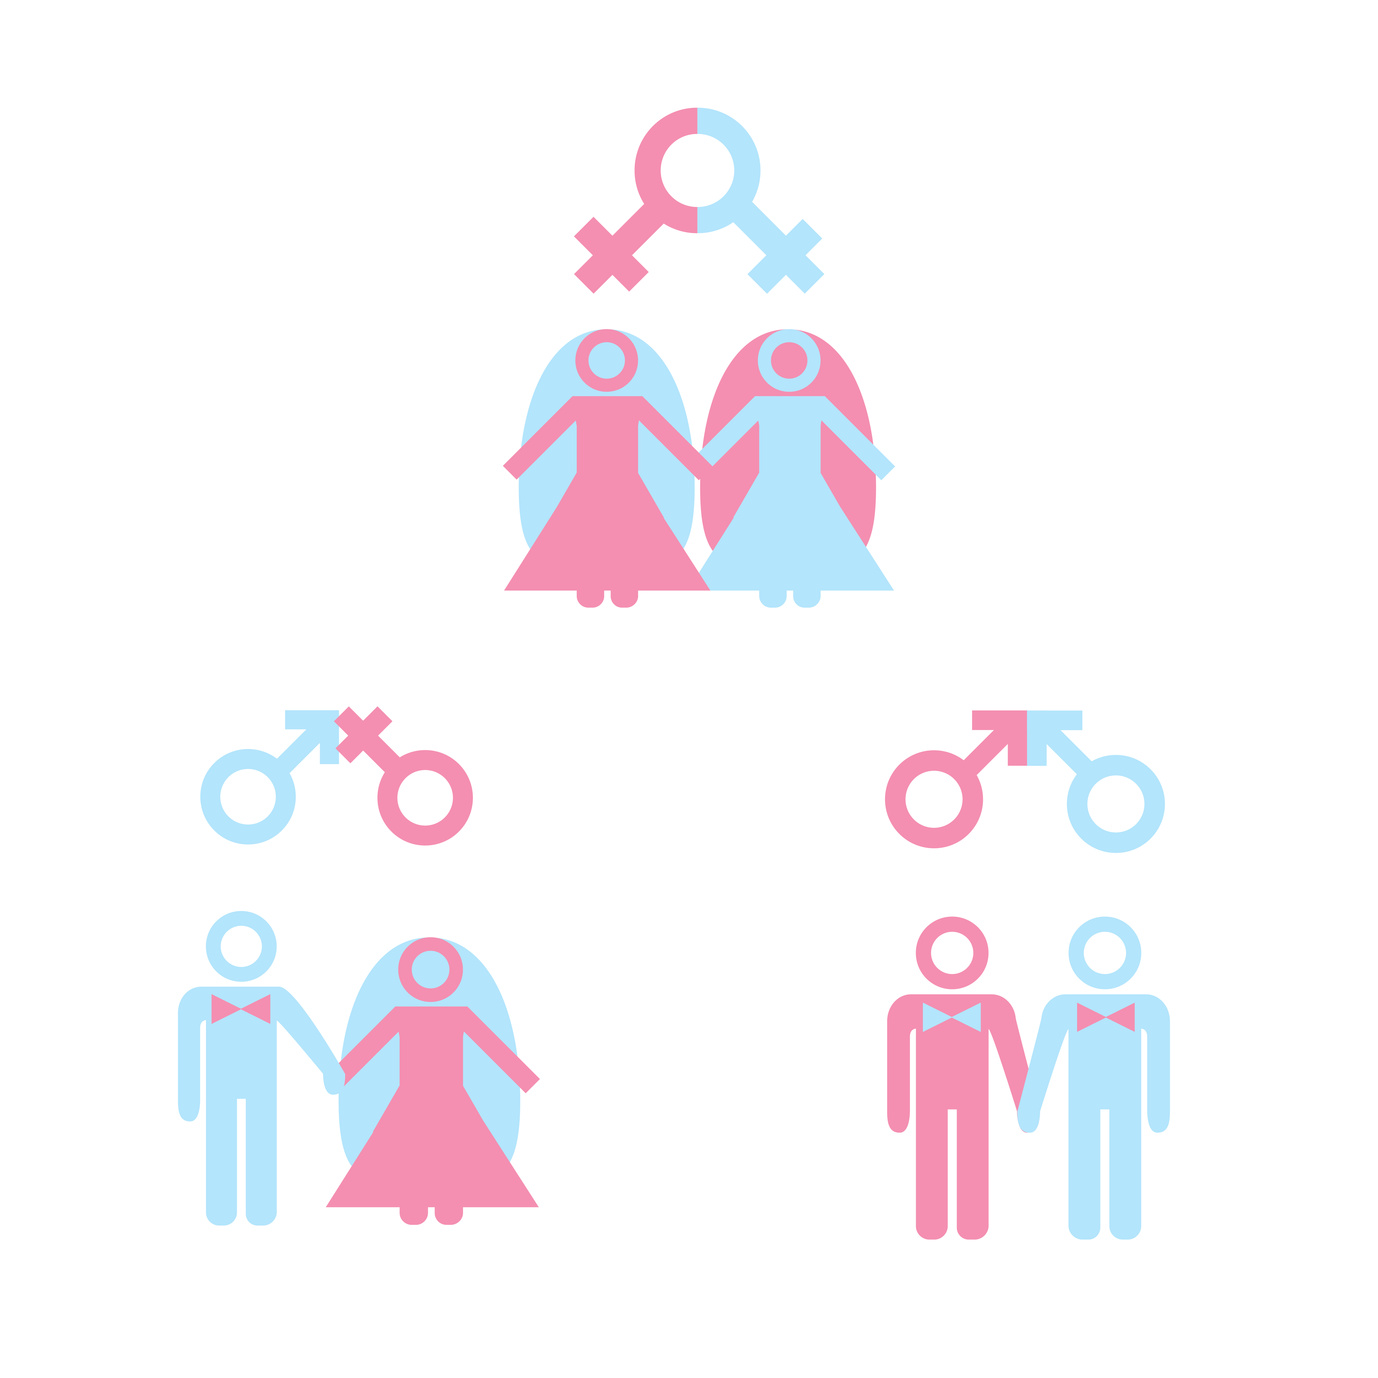 Dr. Tinsley Ariana Taylor Keefe Advises on Coming Out as Transgender Before the Wedding